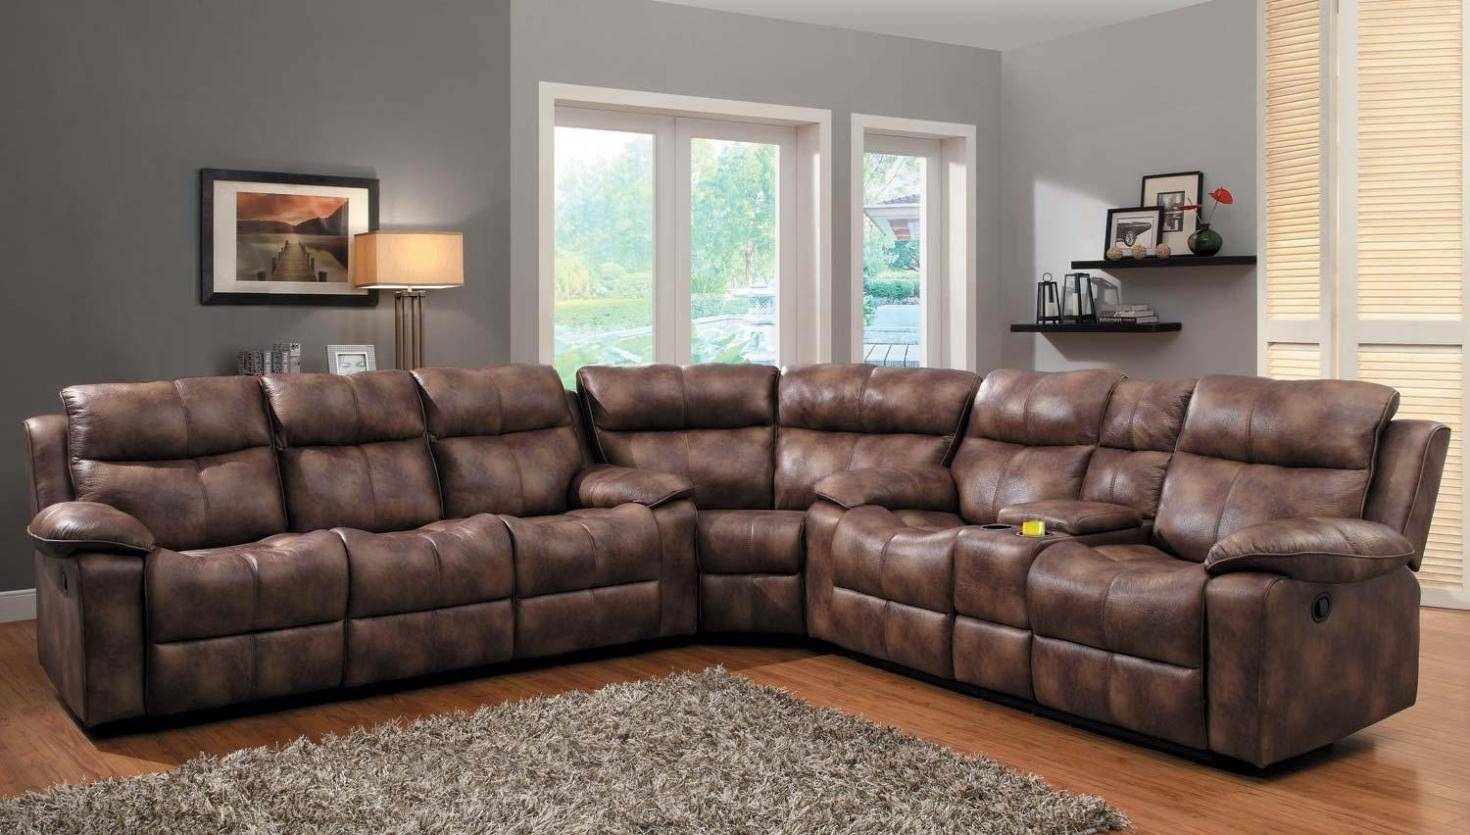 30 Best Jedd Fabric Reclining Sectional Sofa : fabric reclining sectional sofa - islam-shia.org